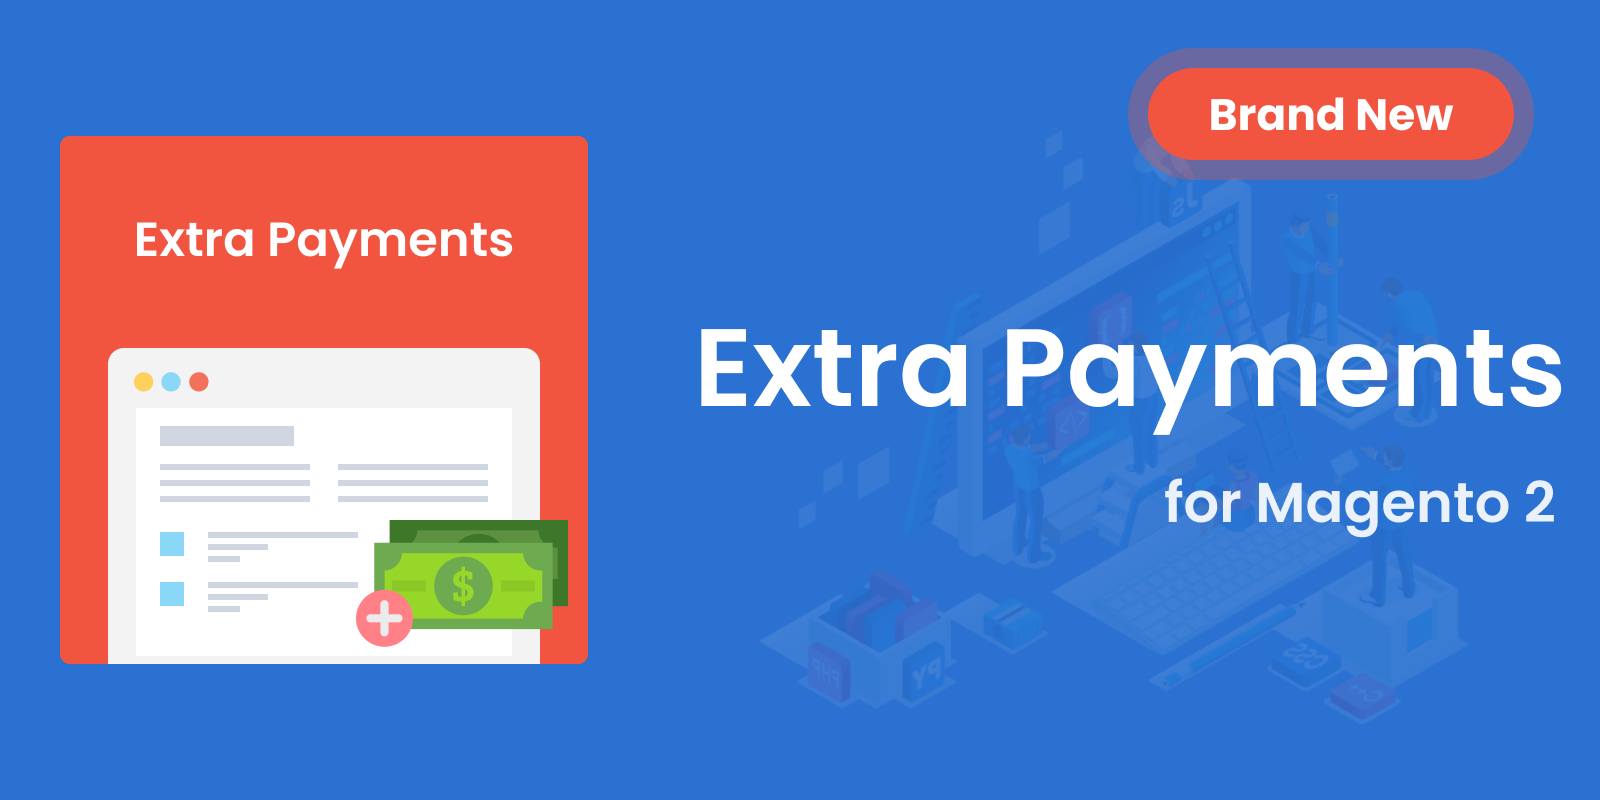 New Module: Magento 2 Extra Payments